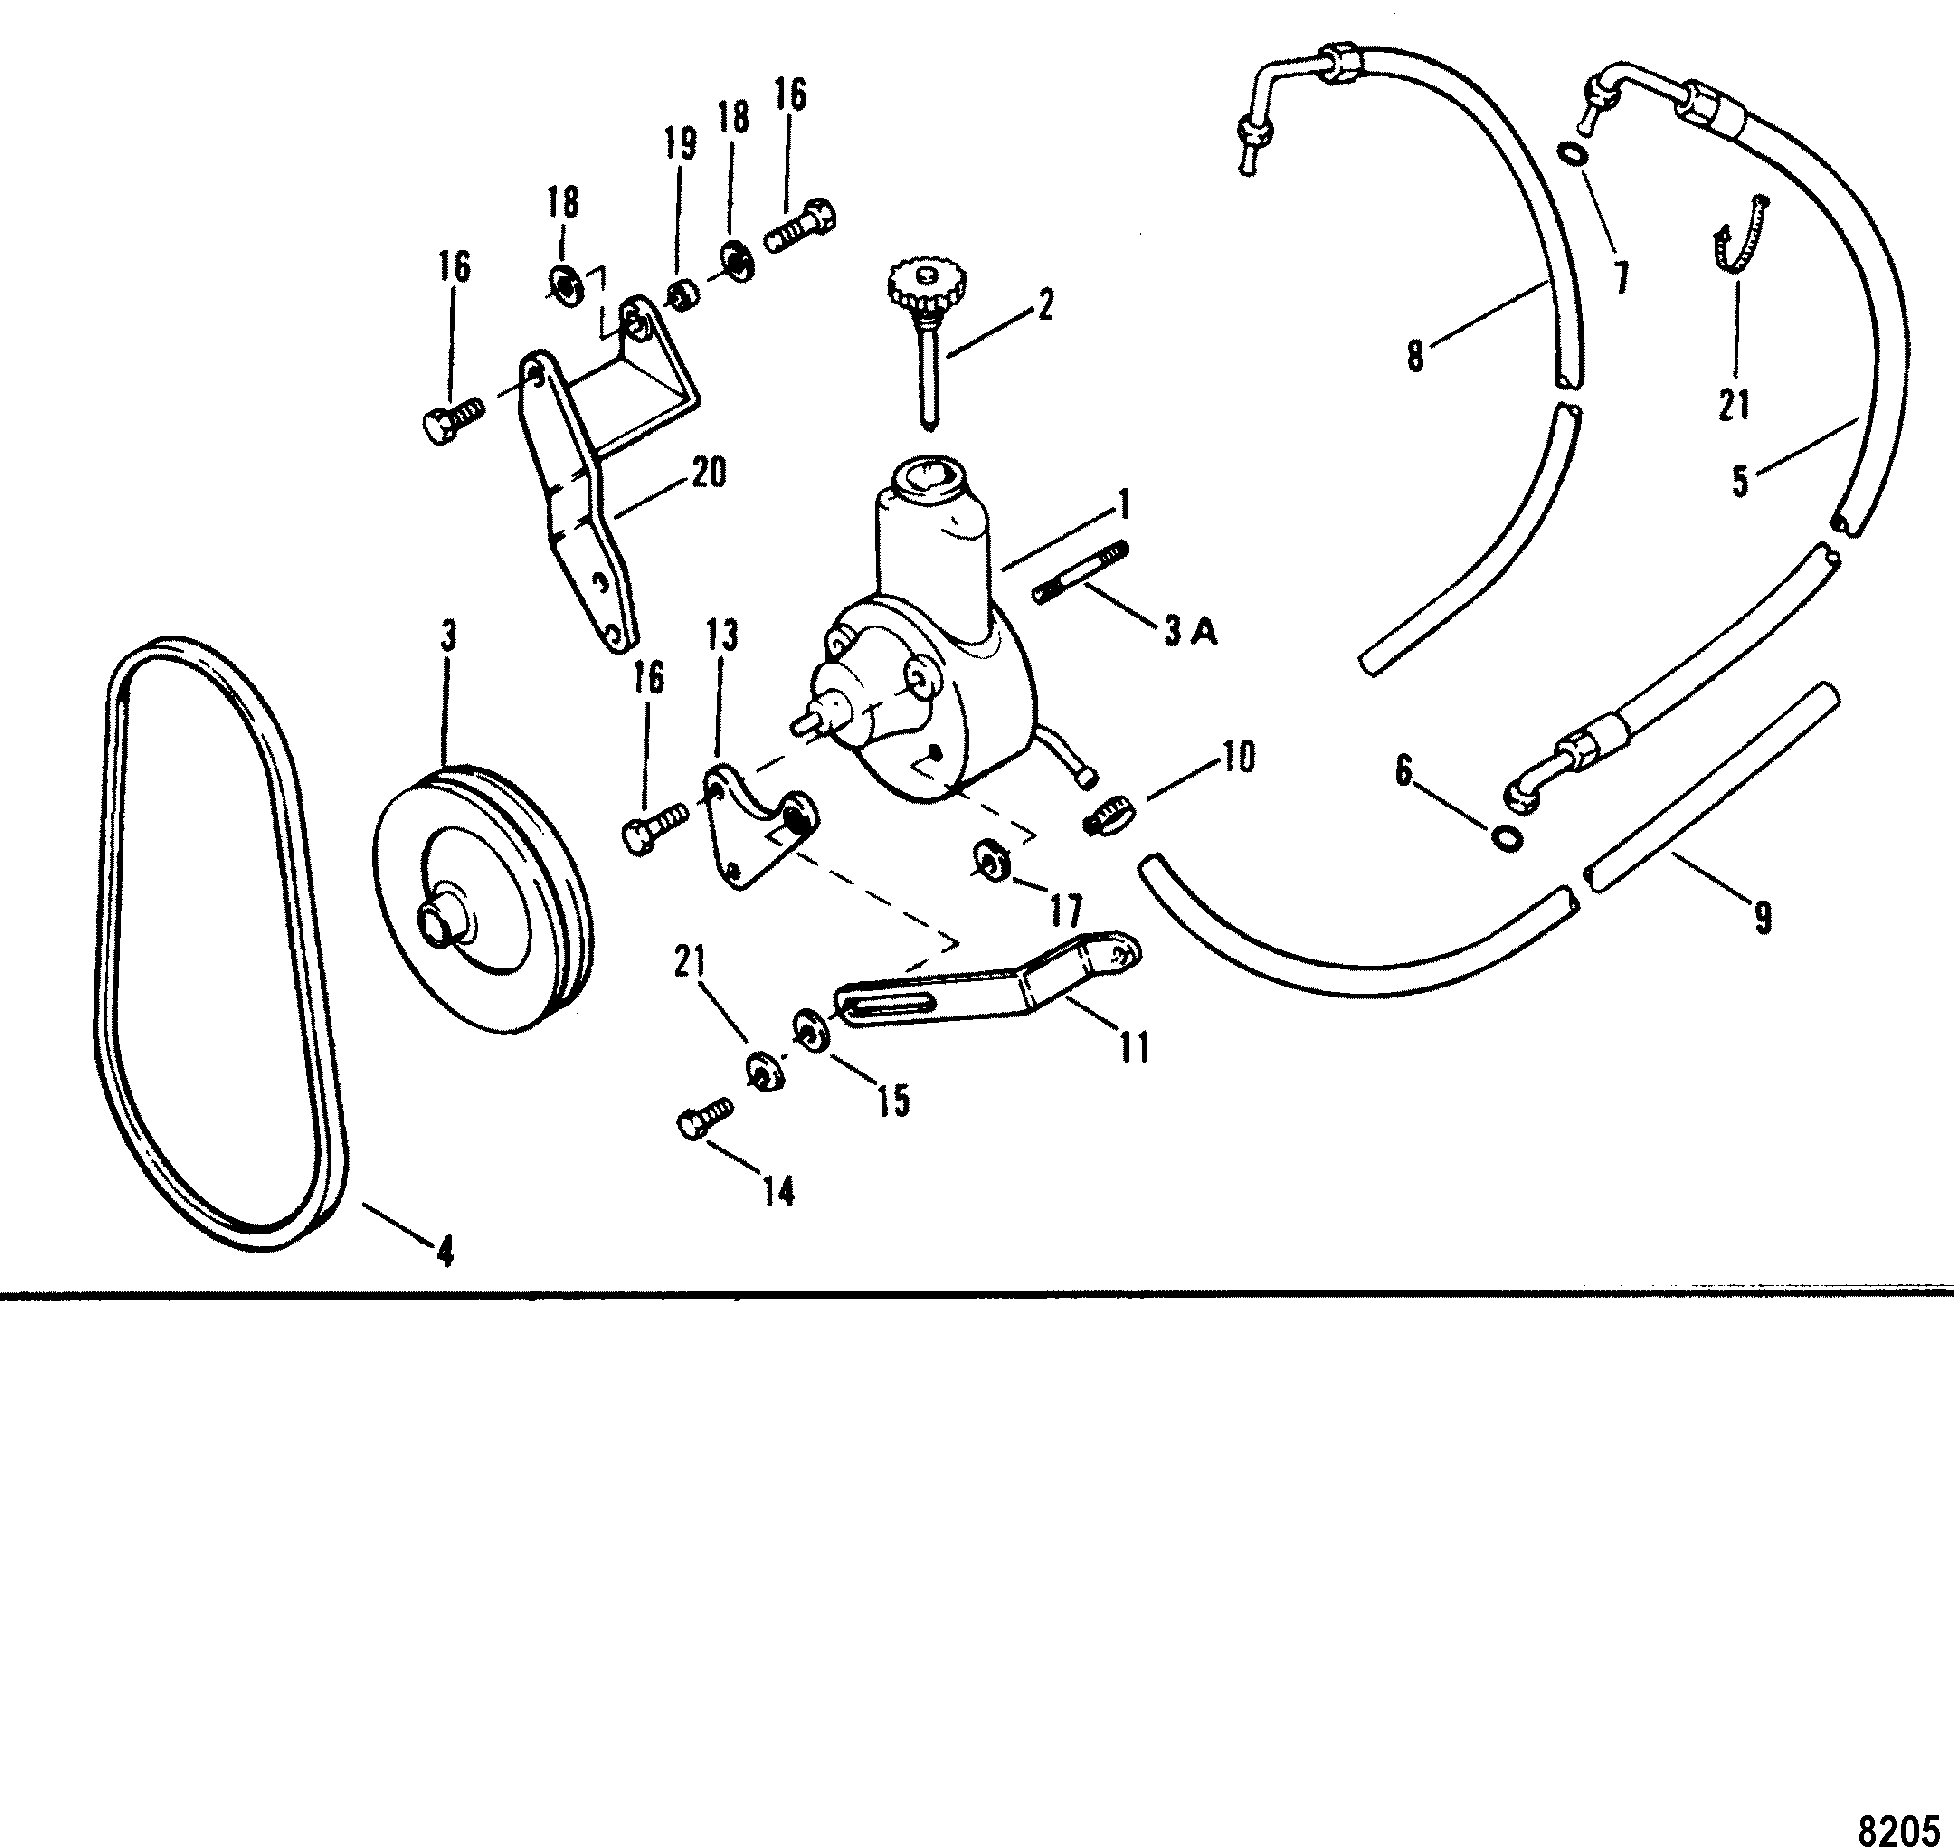 hight resolution of power steering diagram